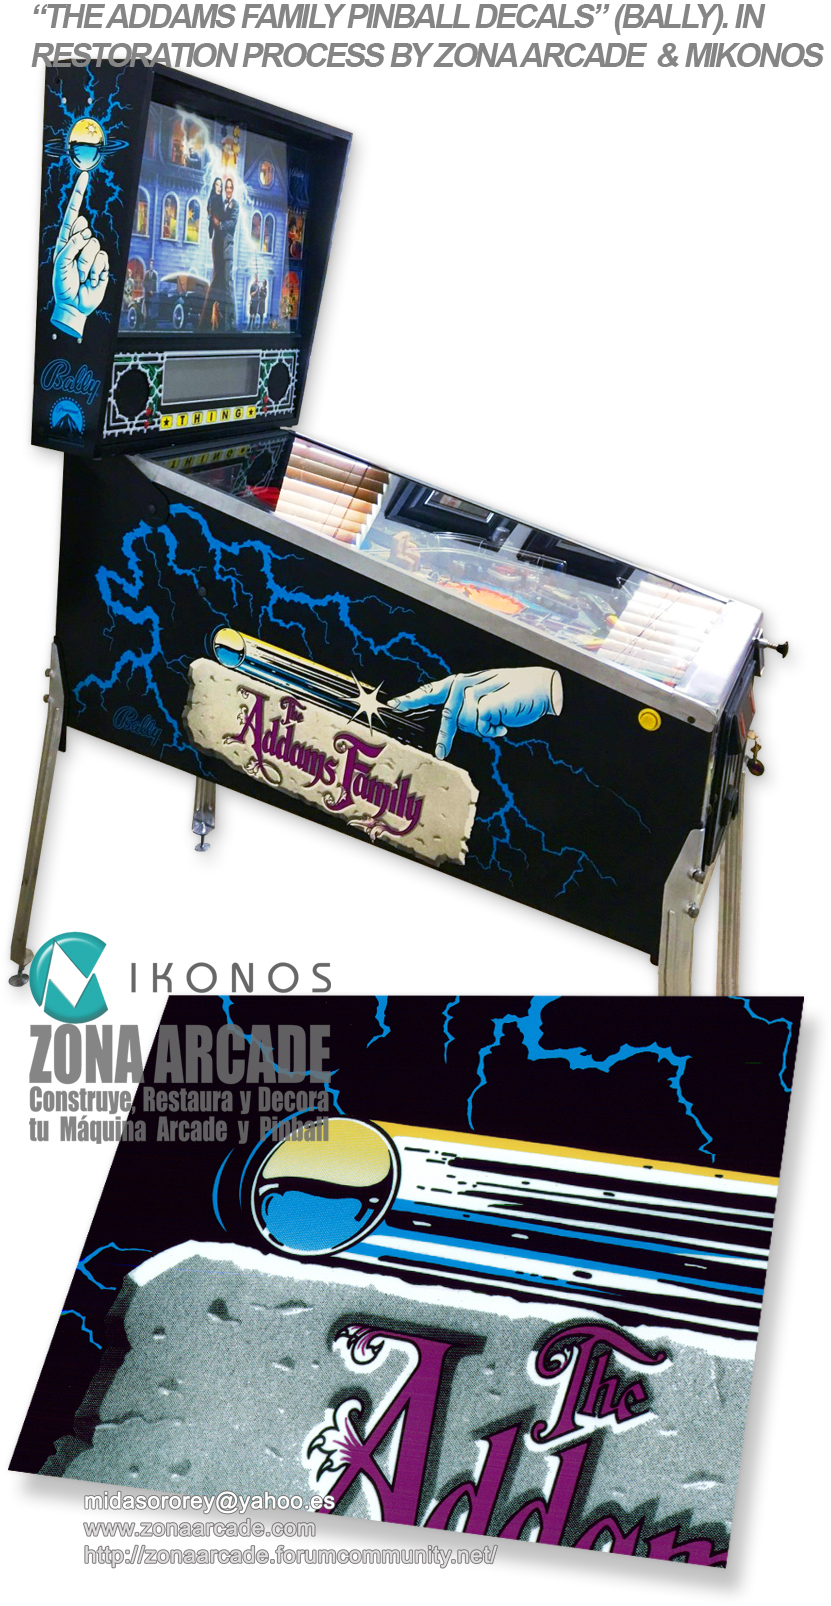 The%20Addams%20Family%20Pinball%20Decals.%20In%20restoration%20Mikonos1.jpg